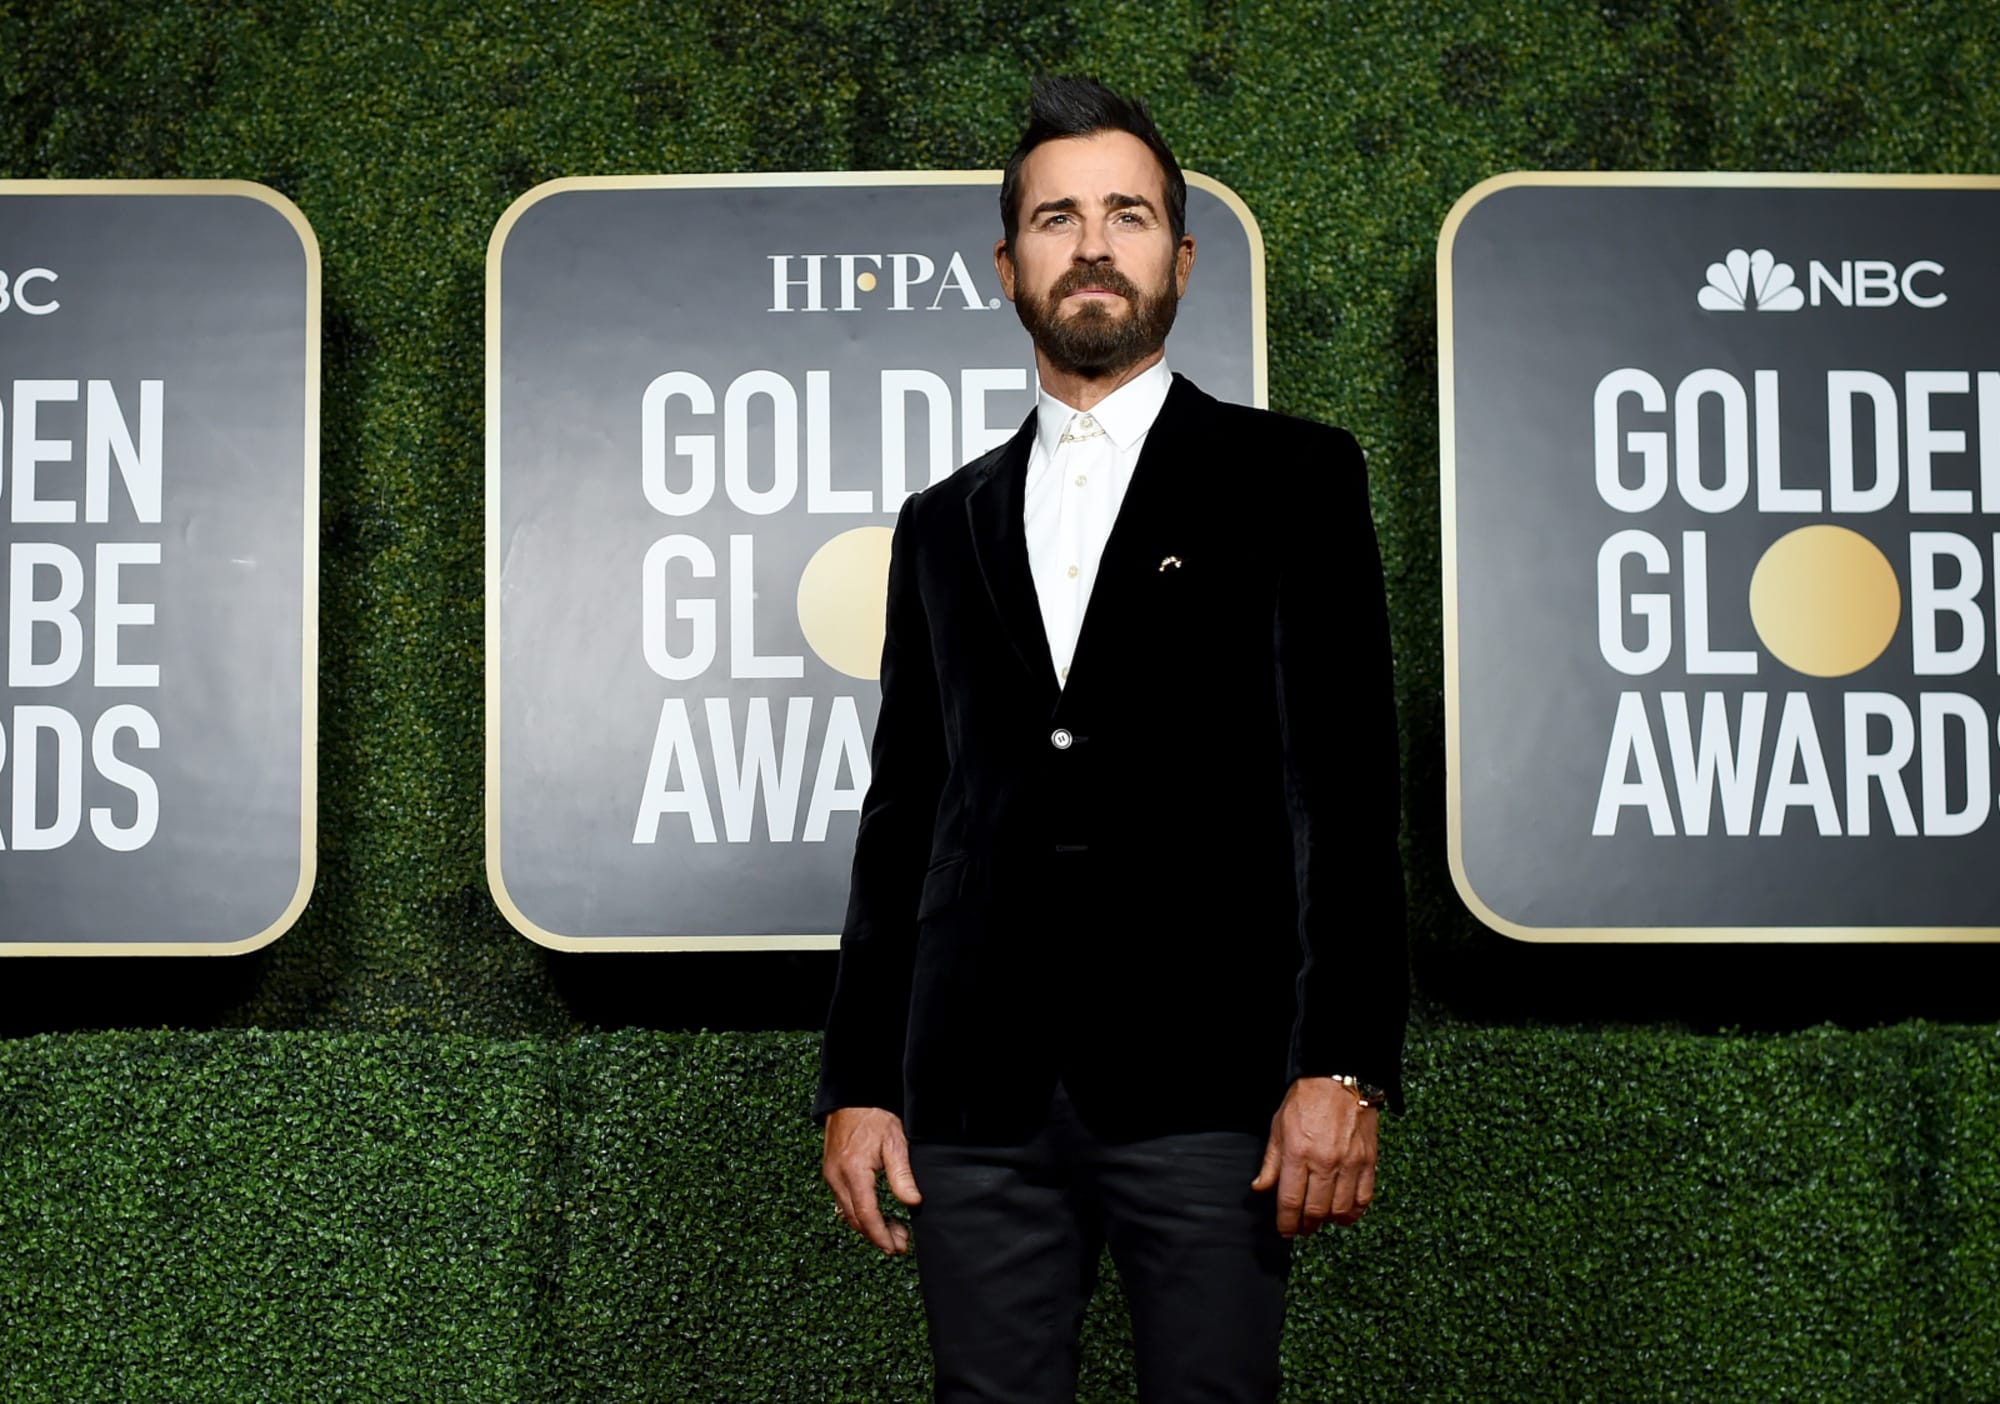 2021 Golden Globes saw some pet-related content